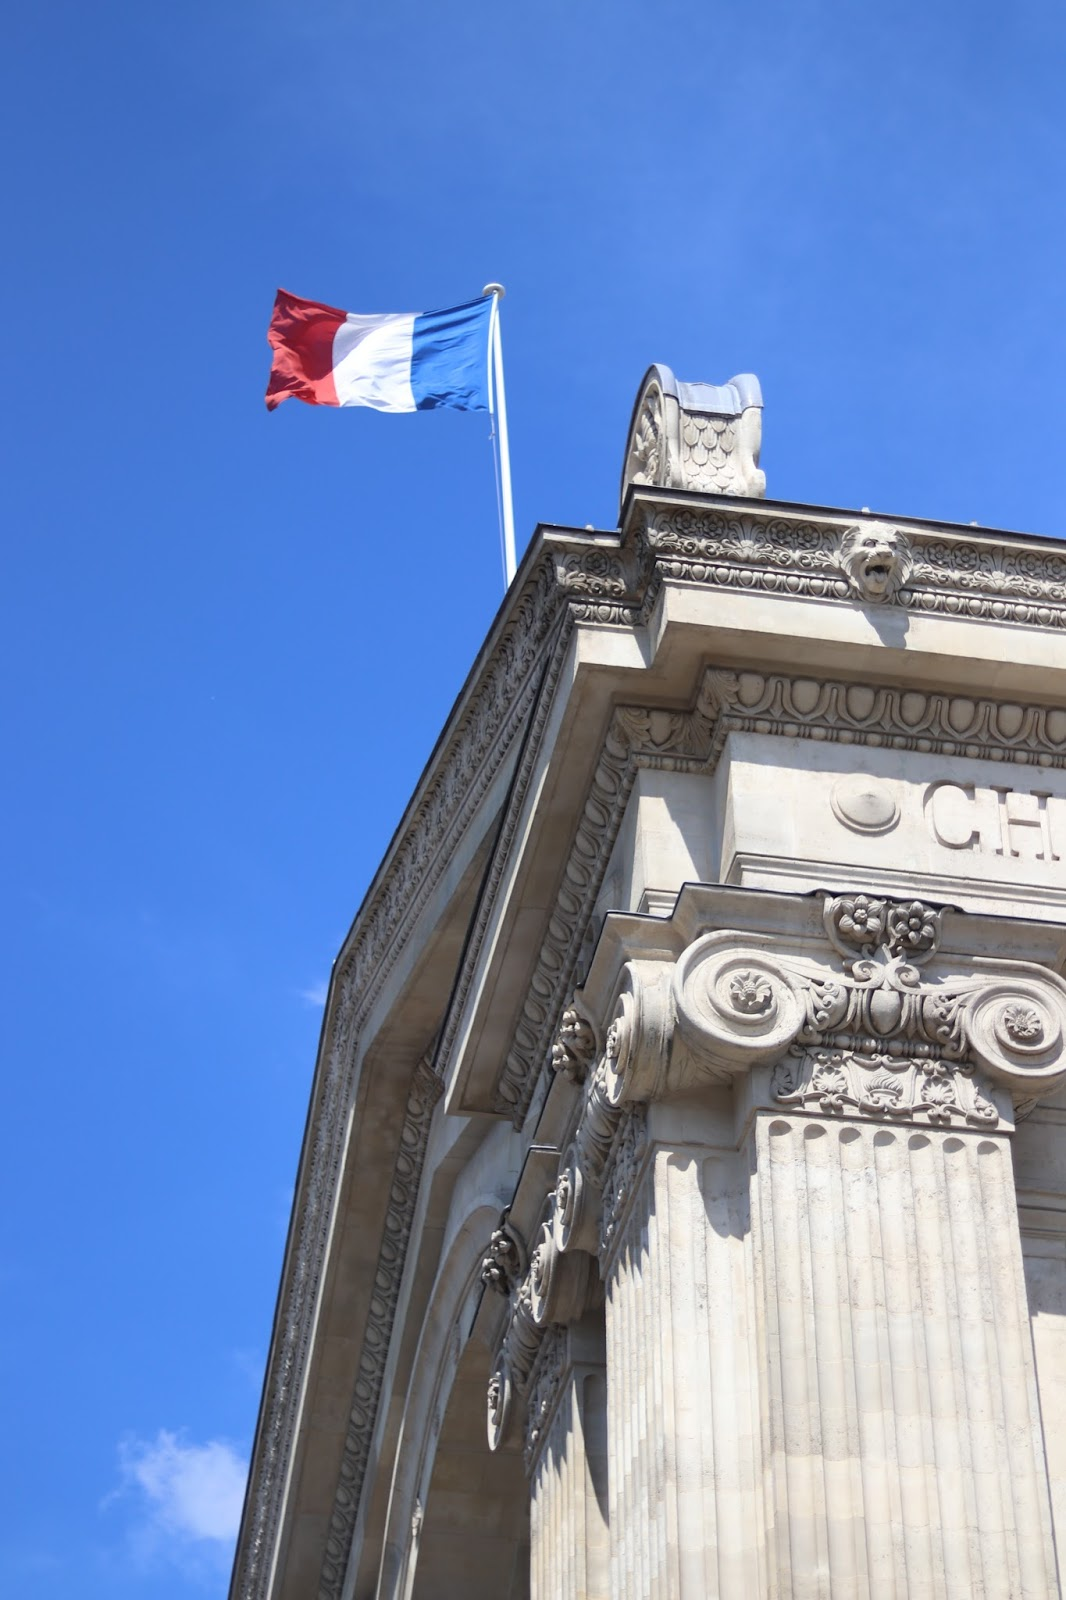 French Flag blowing in the wind against blue sky, Paris, France